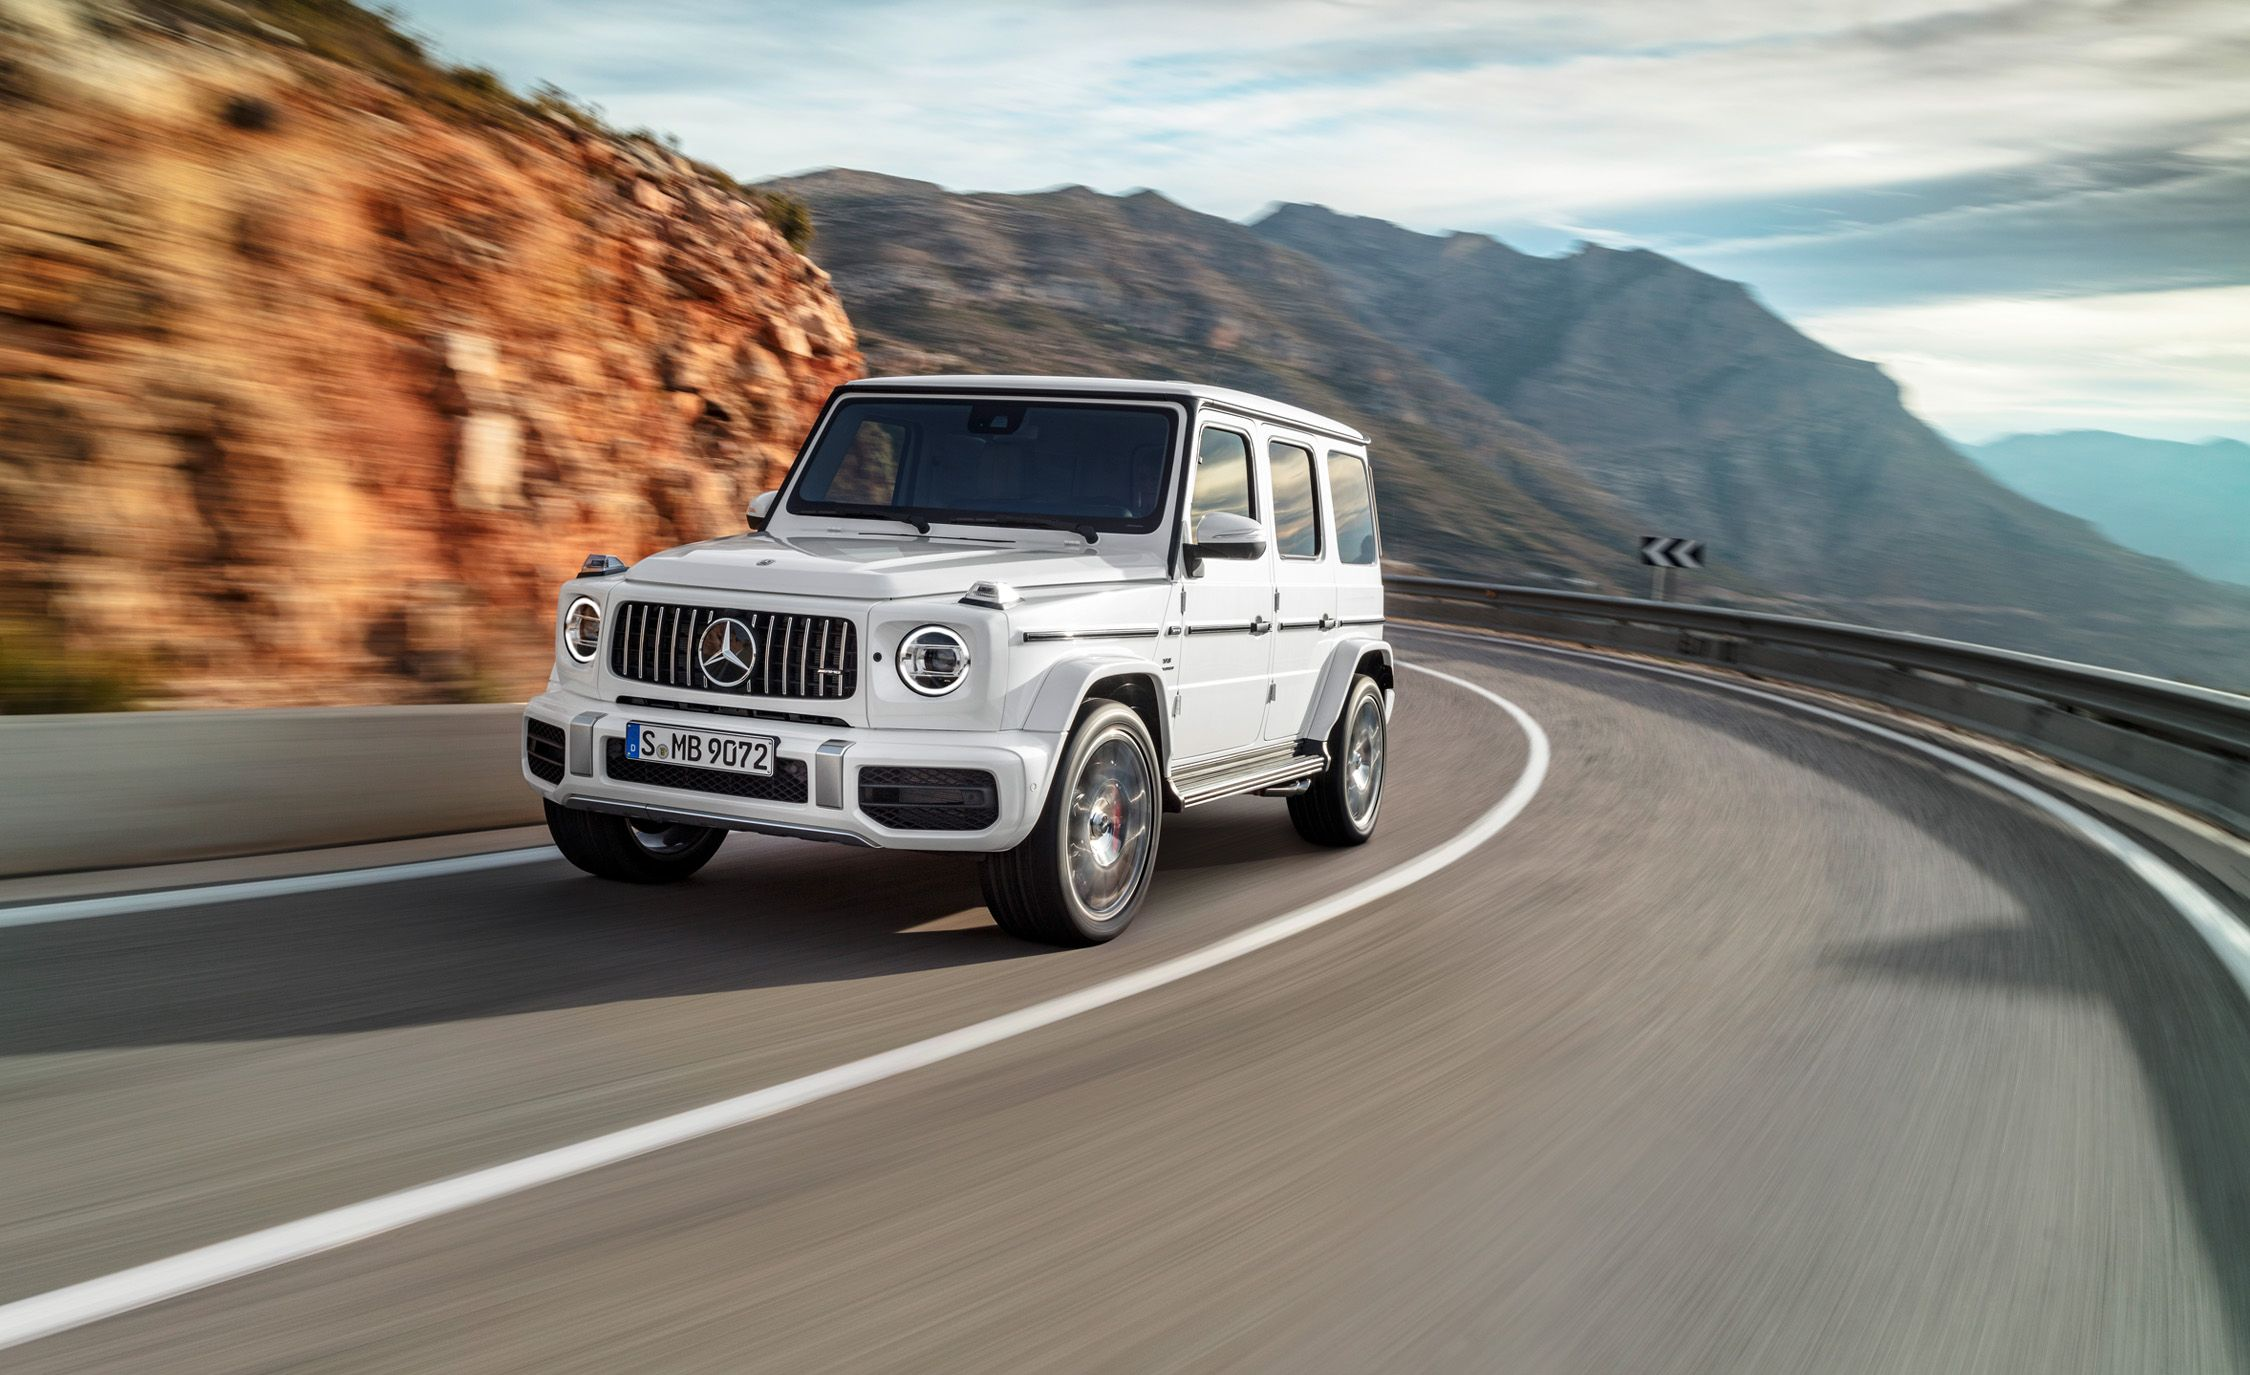 Mercedes amg g63 g65 4matic reviews mercedes amg g63 for Mercedes benz g class amg